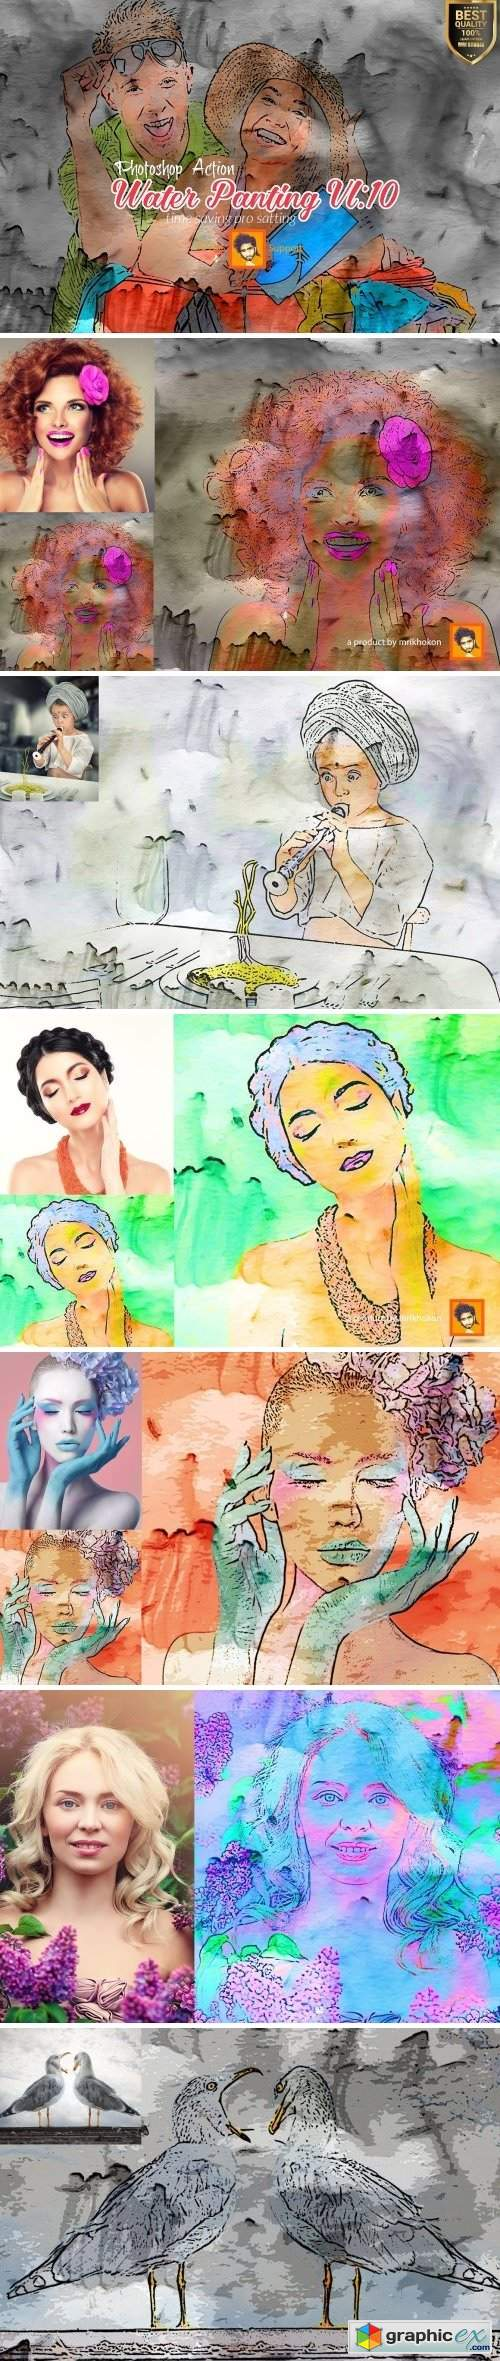 Water Panting Photoshop Action Vl 10